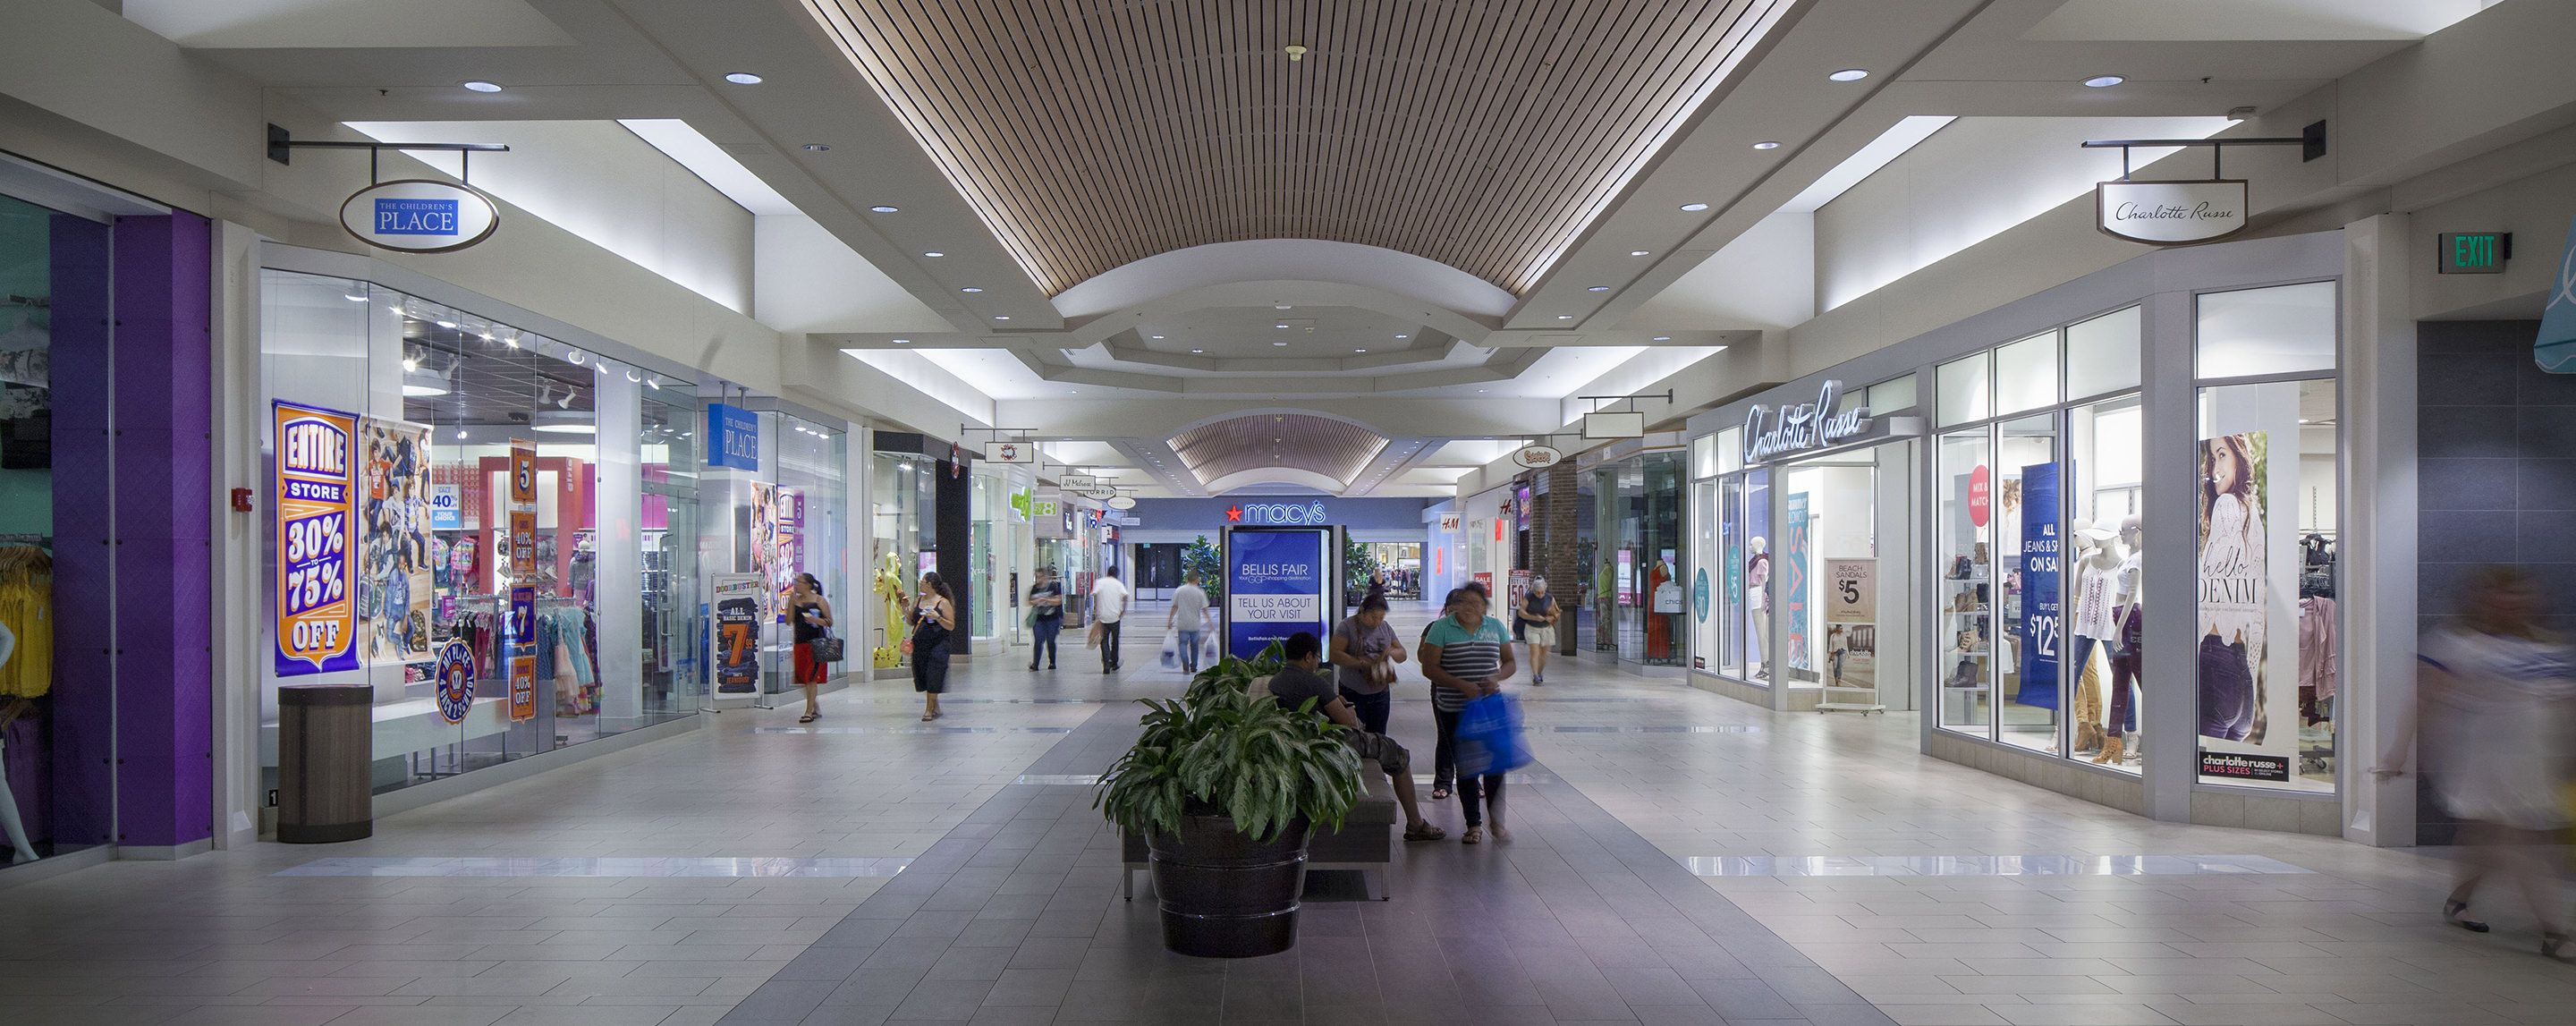 People walk down the corridor of a shopping center and pass by stores like Torrid and Charlotte Russe.